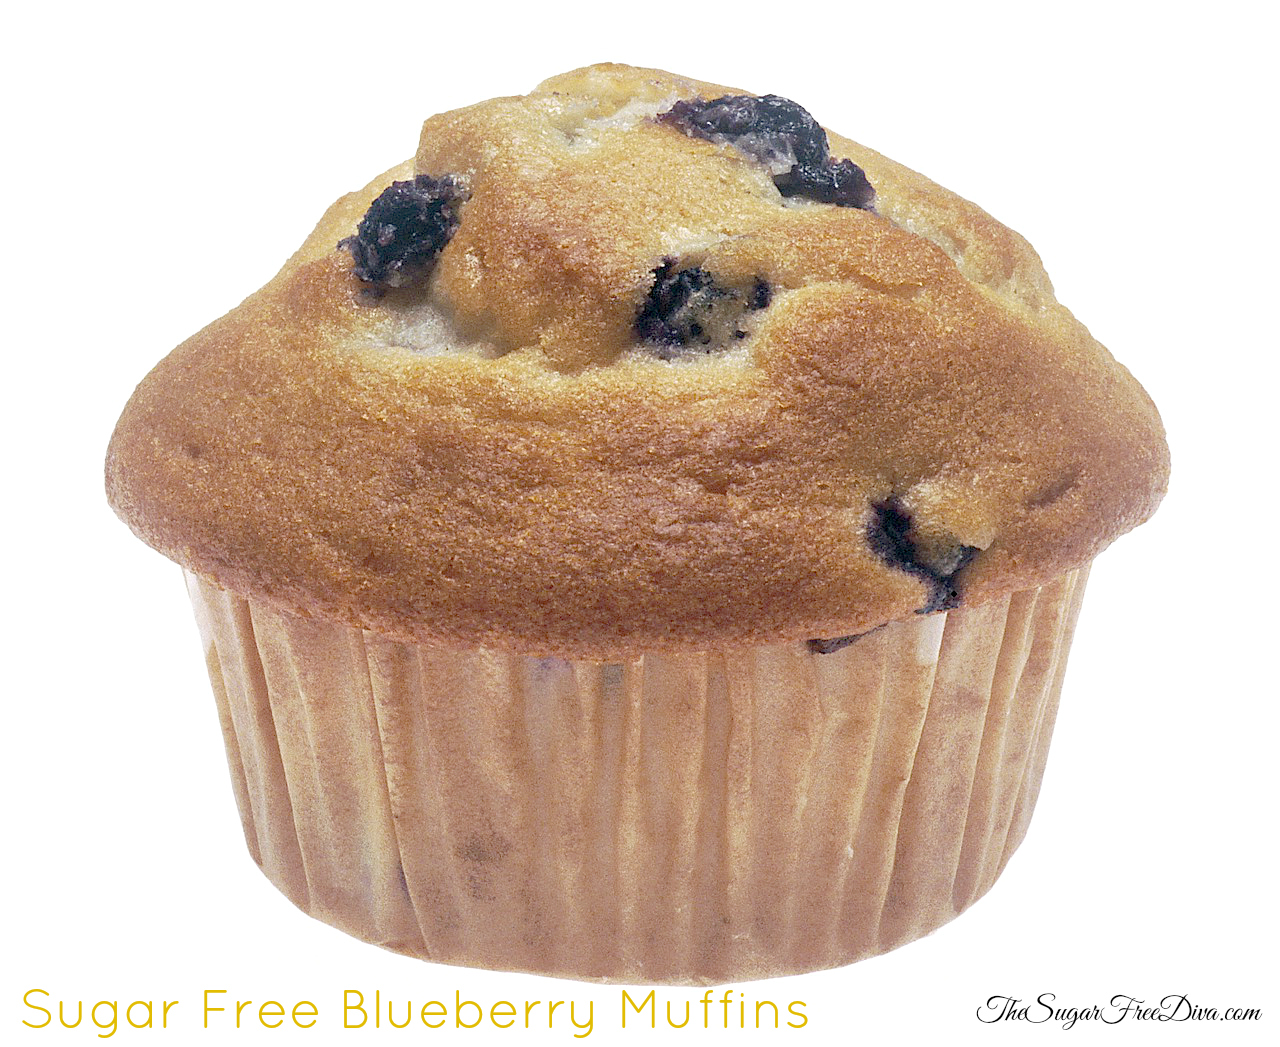 The Sugar Free Blueberry Muffin